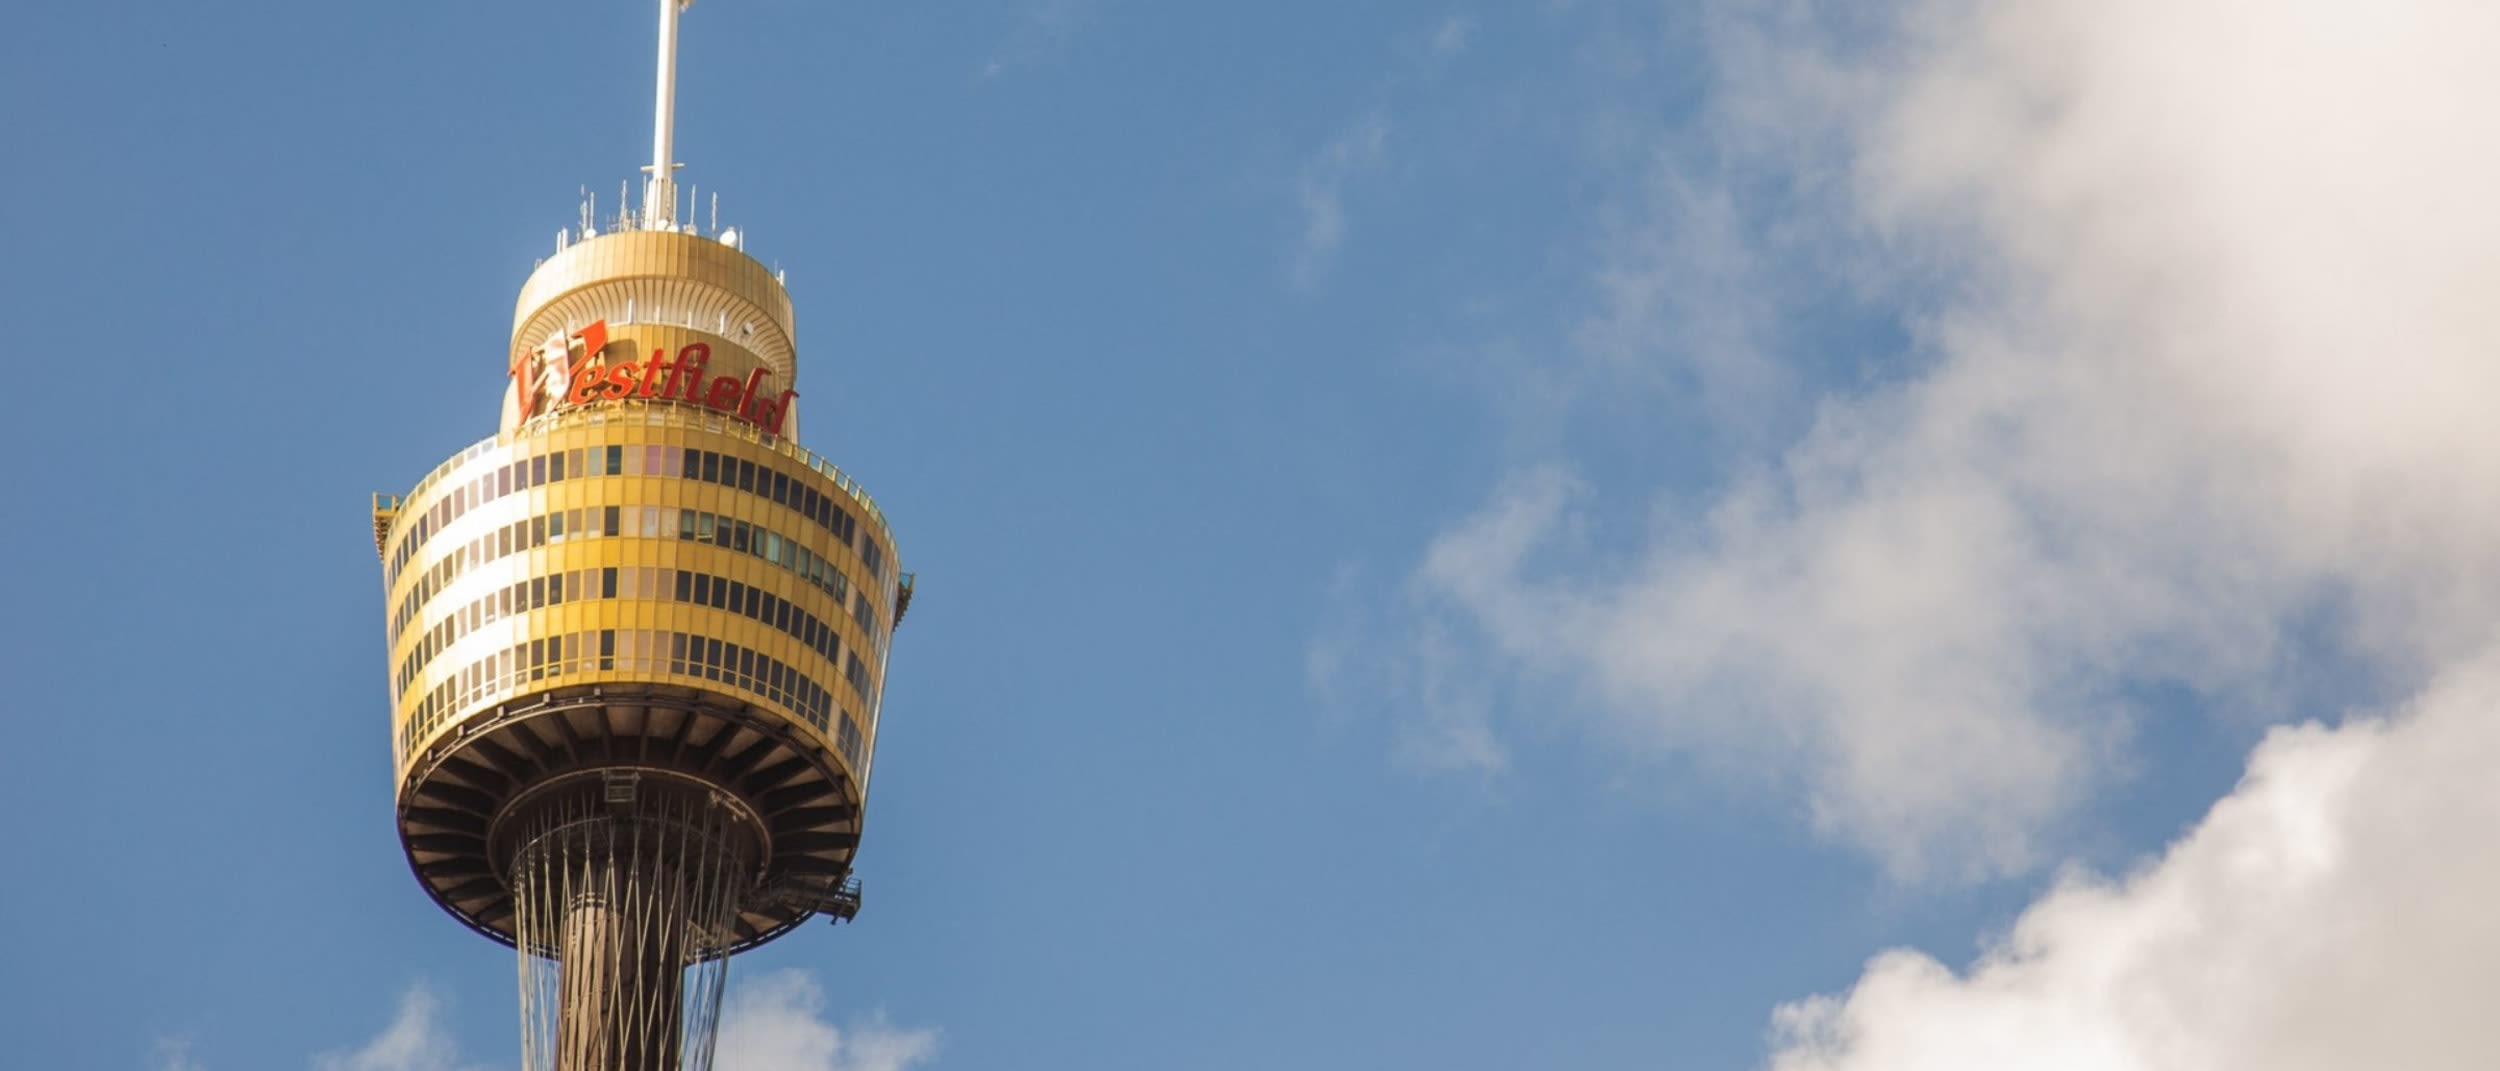 Sydney Tower Dining: A virtual tour into the 6-month reinvention